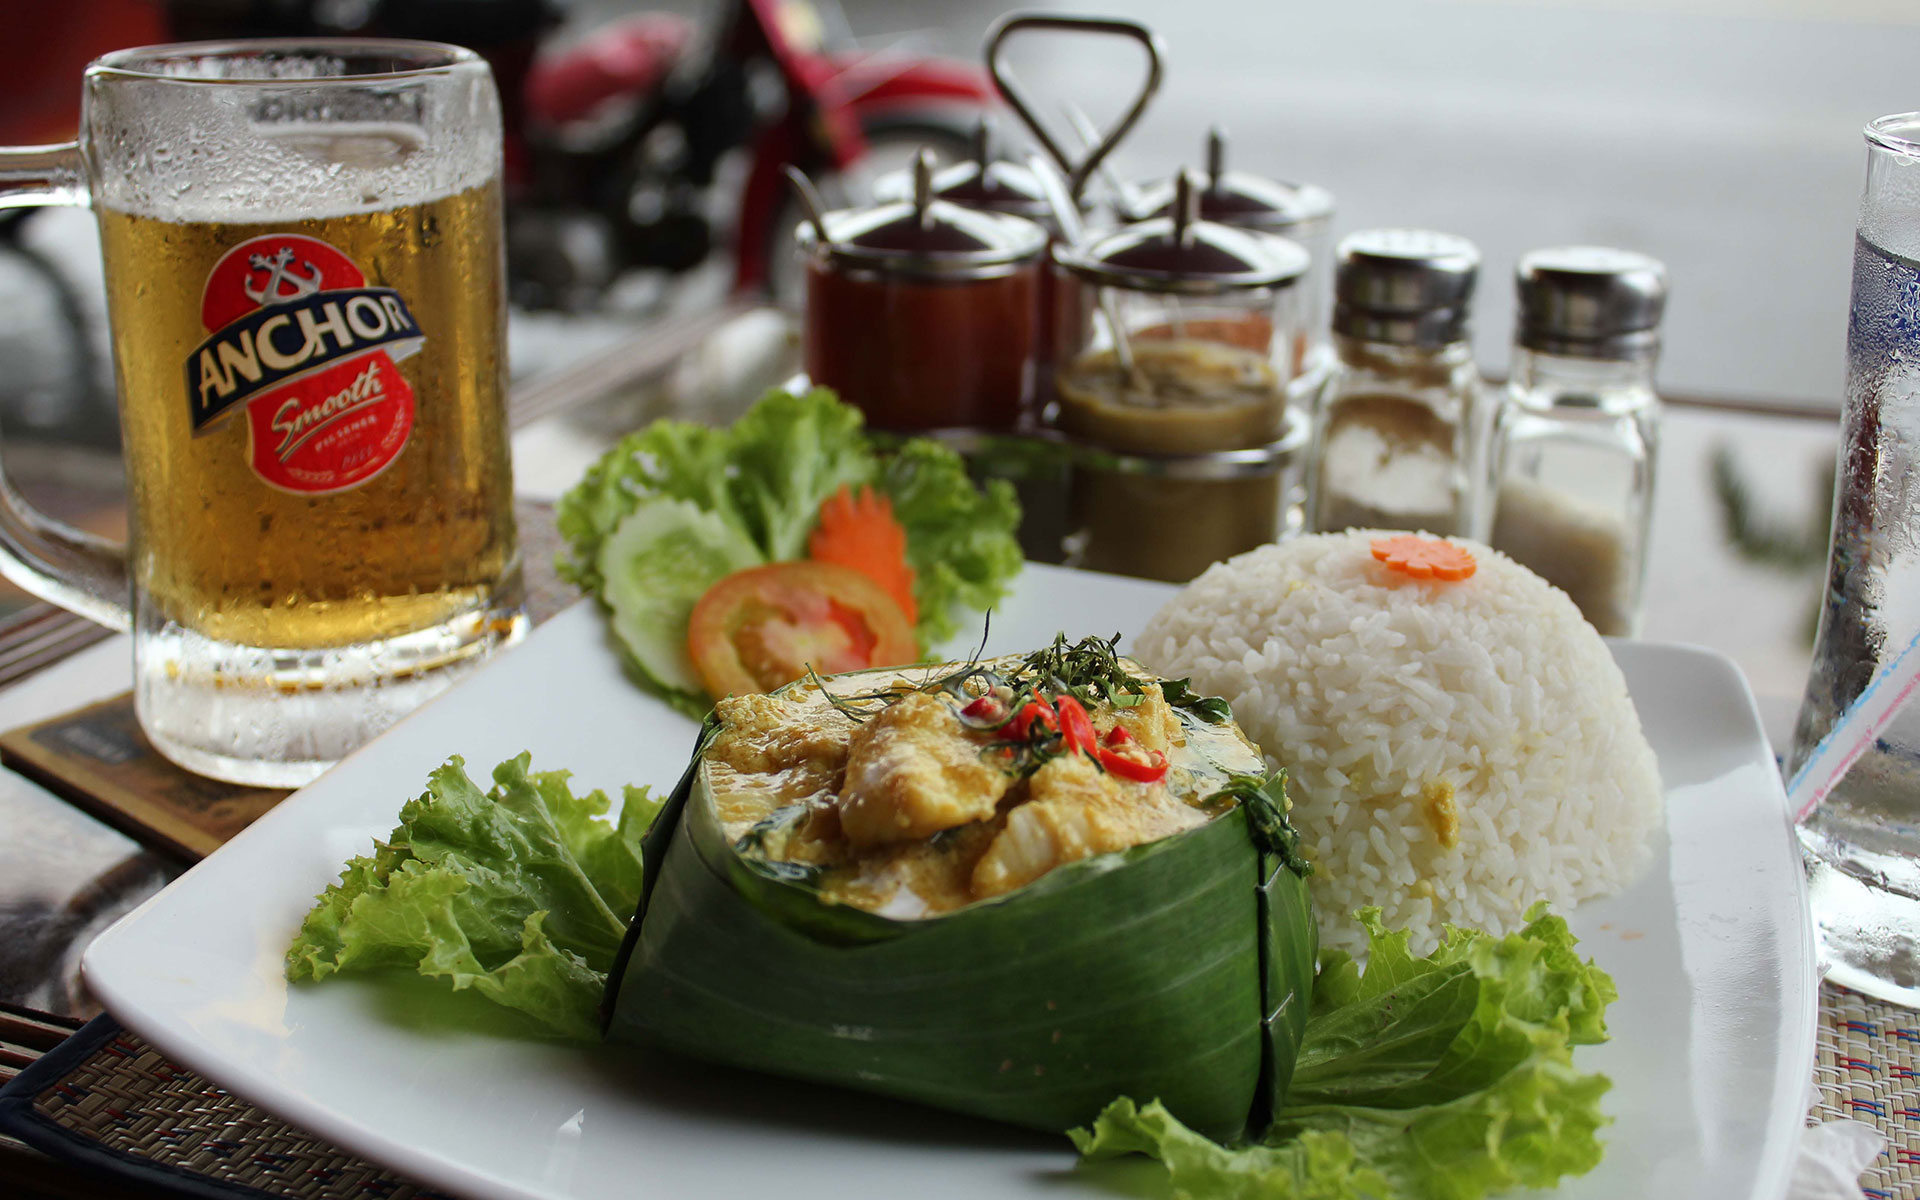 Cambodia Travel Guide - Where and What to Eat in Cambodia